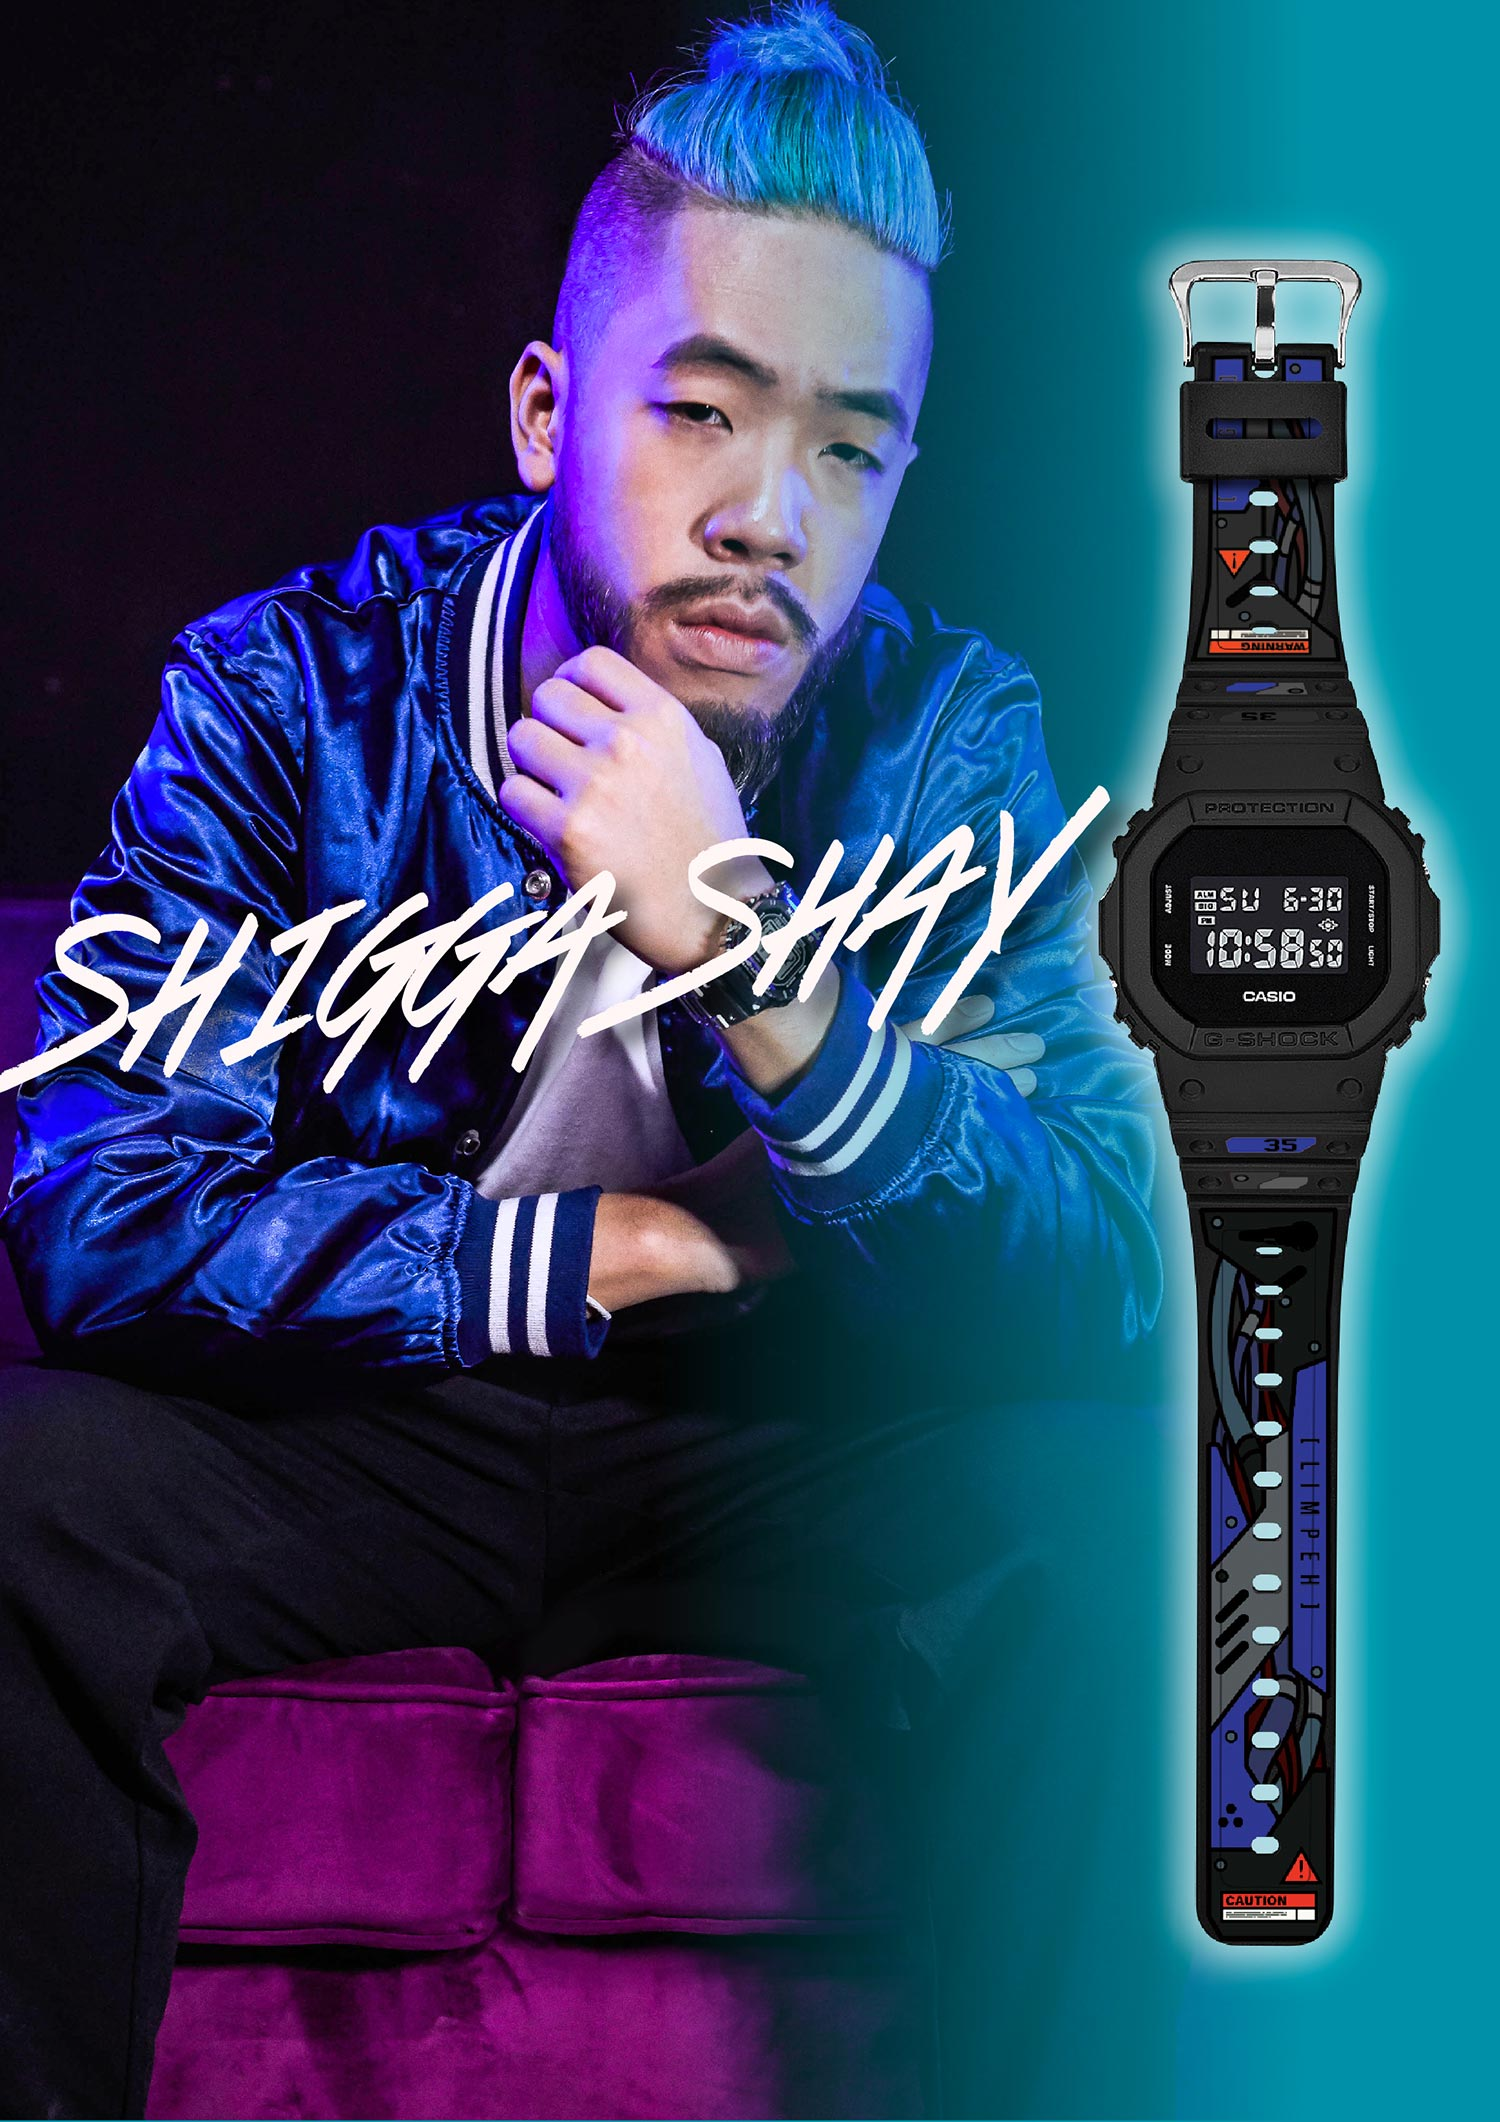 CASIO G-SHOCK Celebrates 35th Anniversary with Exciting Line-Up at G-Fest in Singapore